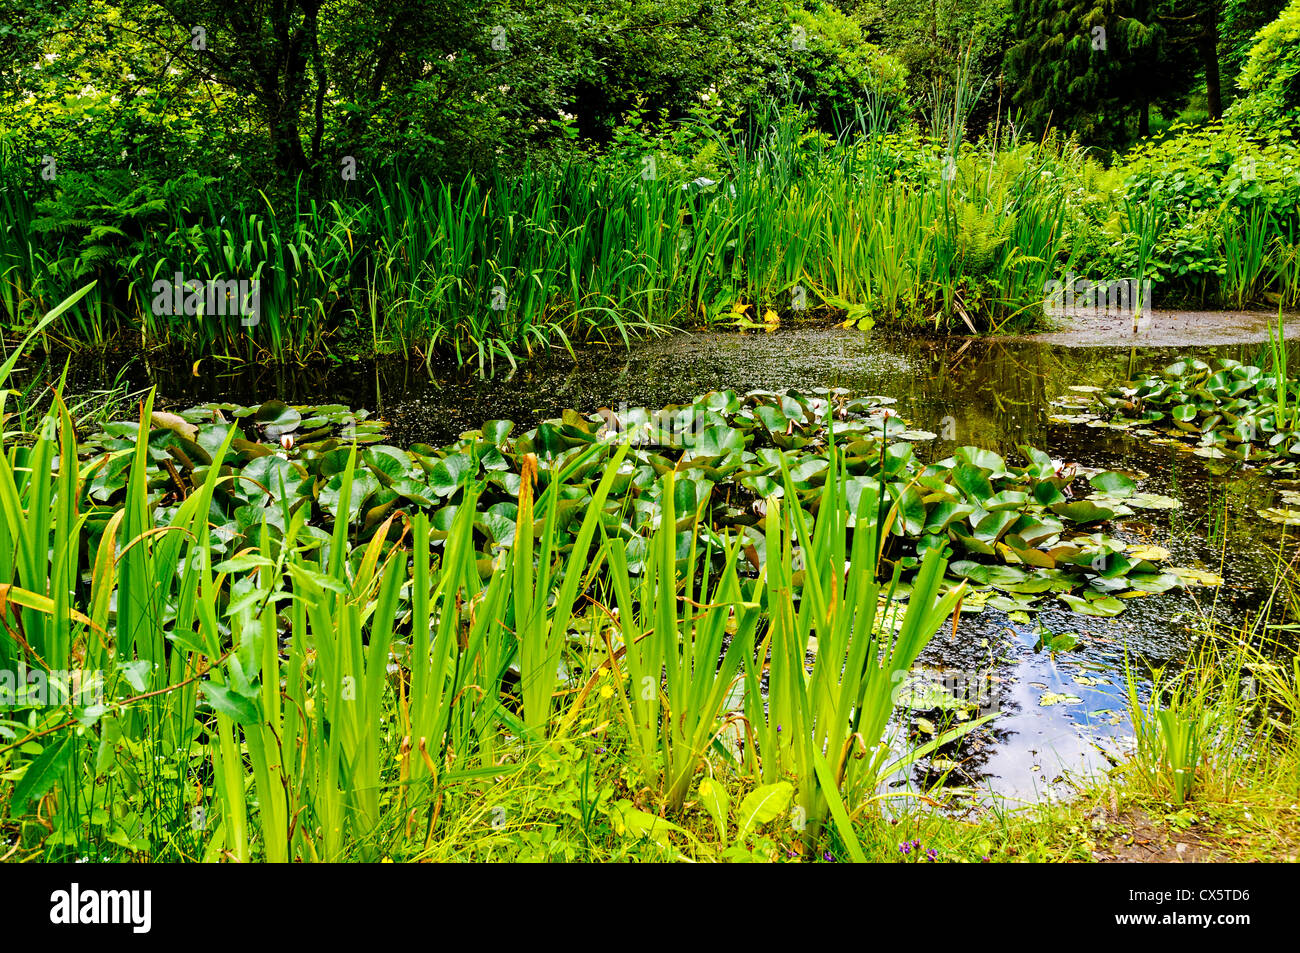 A tree lined freshwater pond supporting luxuriant verdant for Freshwater pond plants